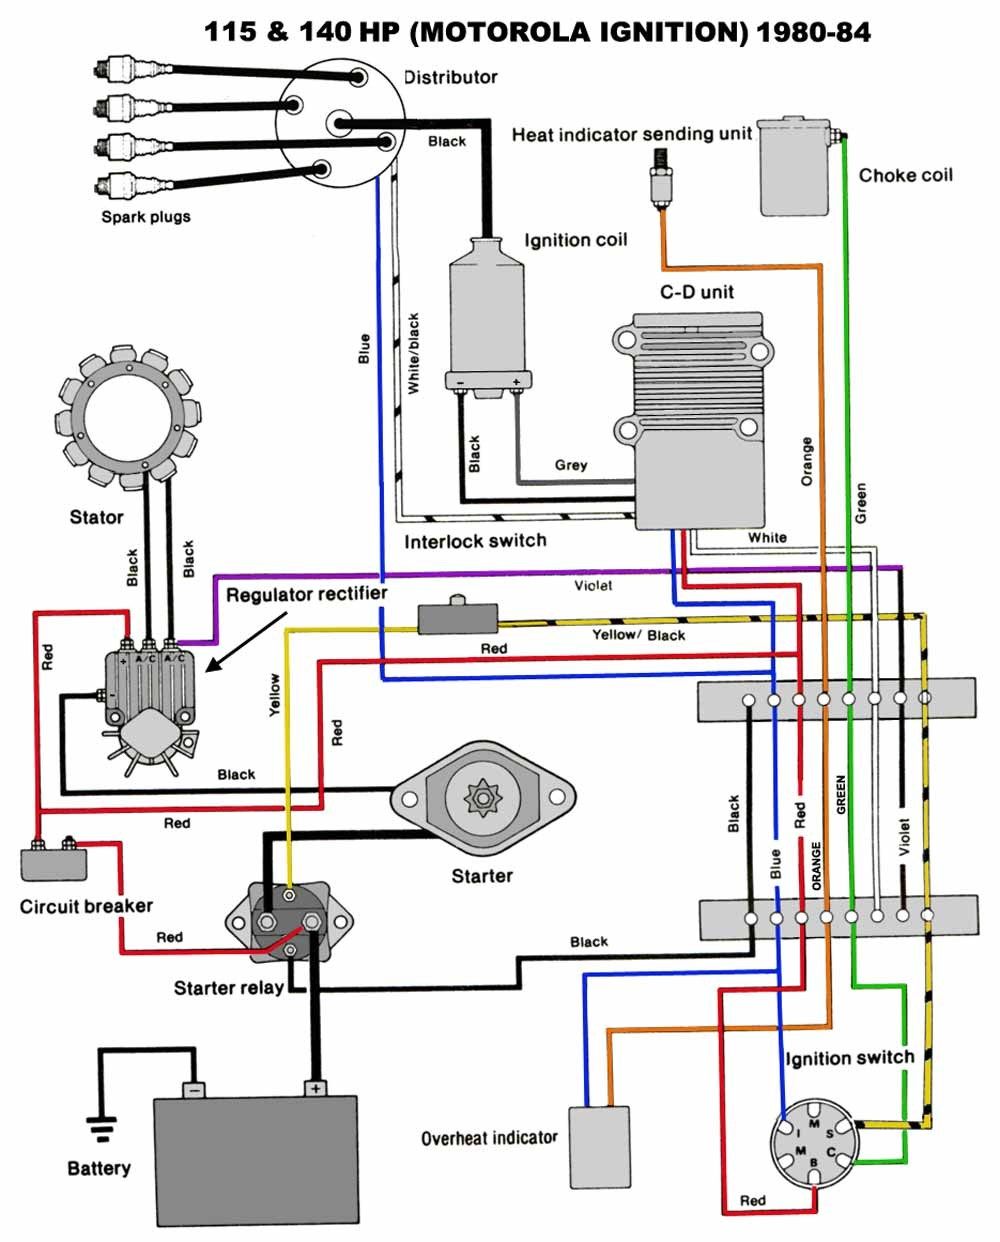 hight resolution of 140 mercruiser wiring diagram schematic wiring diagram img mercury 140 hp wiring diagram